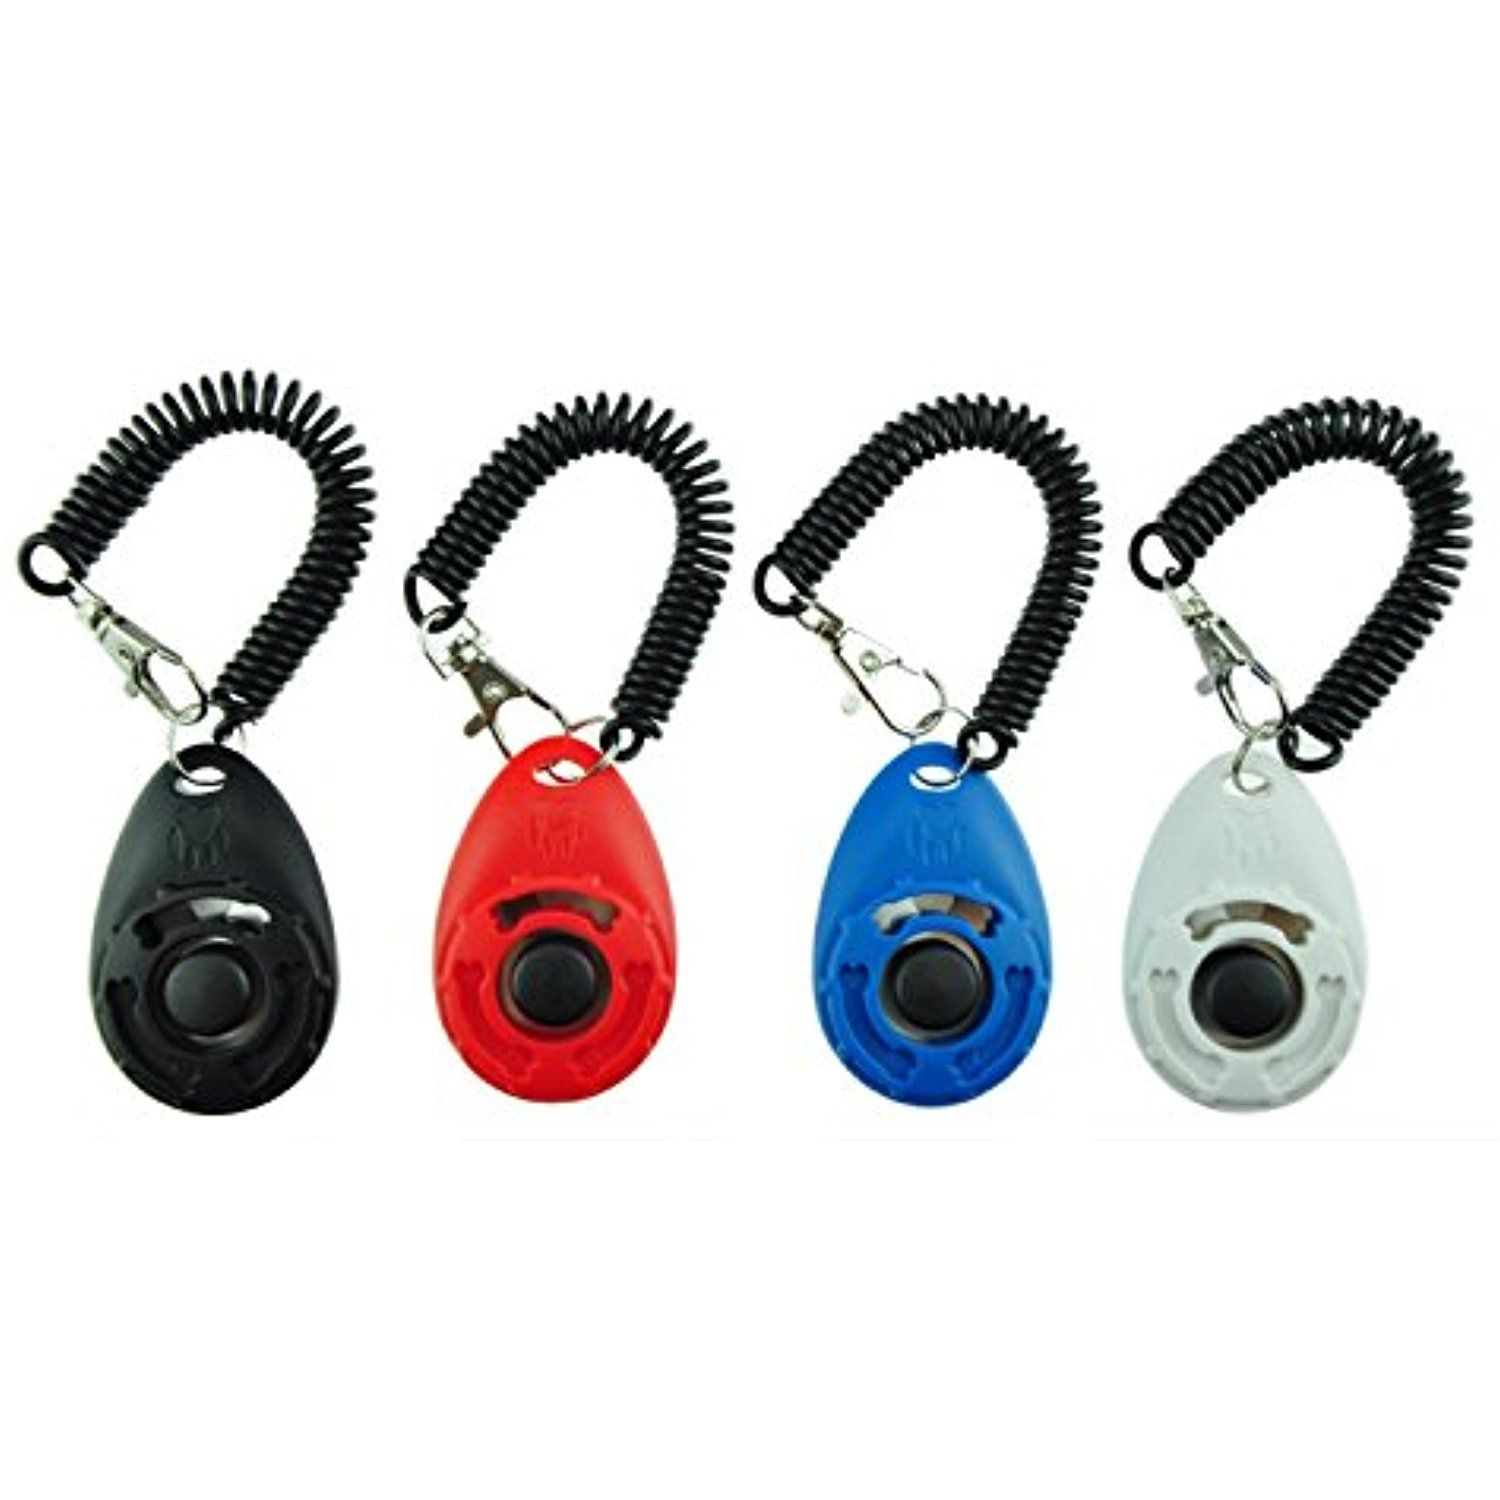 Dog Training Clicker With Wrist Strap Pet Training Clicker Pet